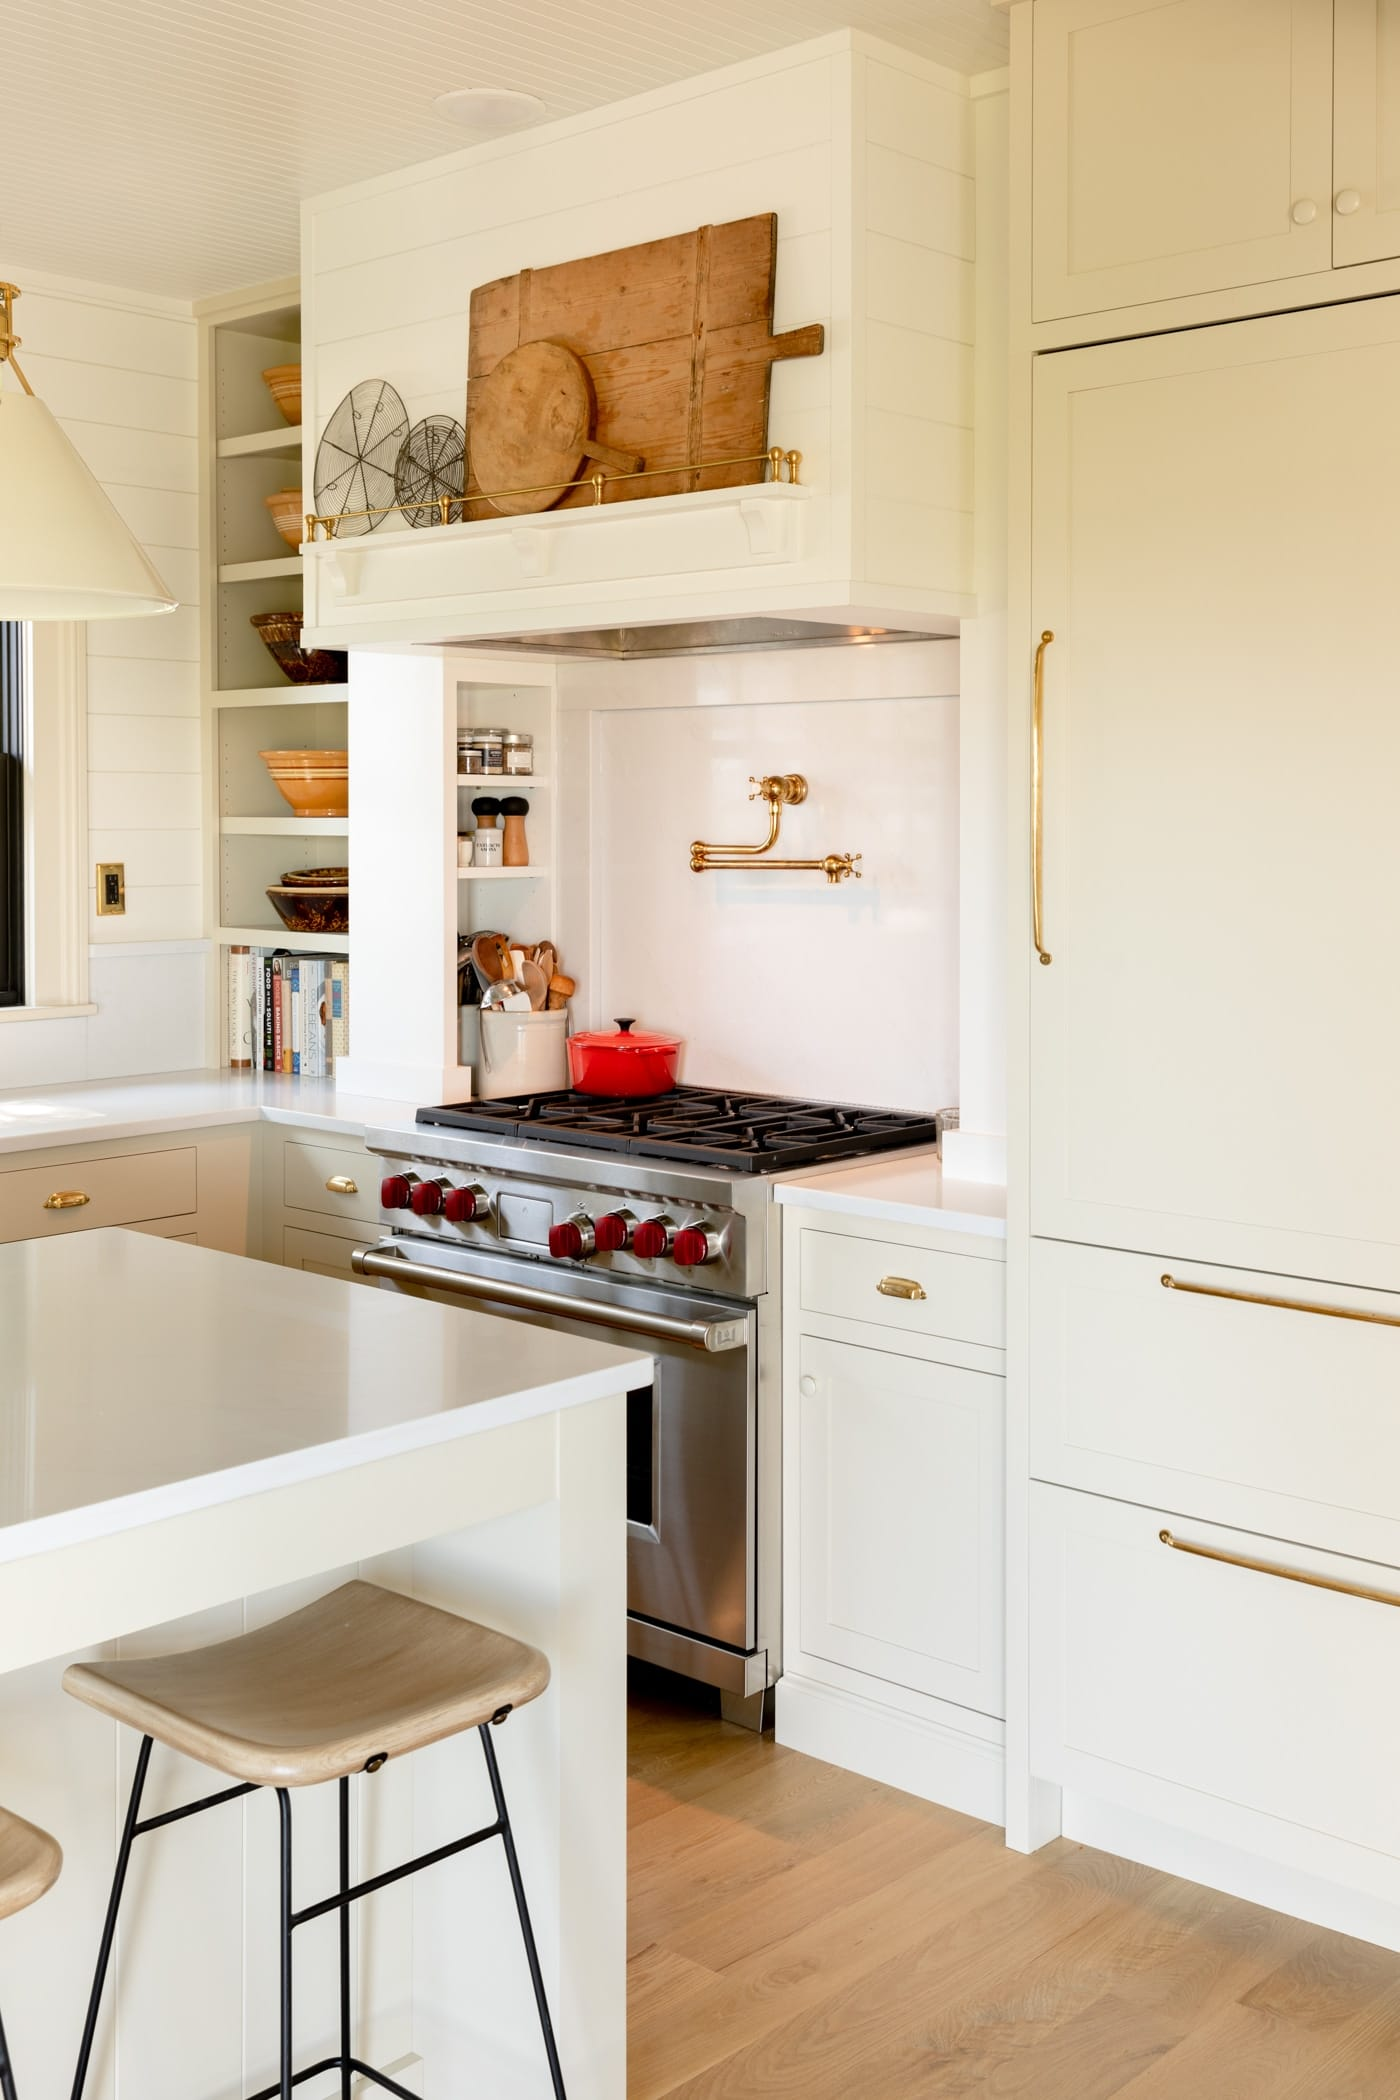 Large stainless steel range with red knobs surrounded by cabinetry and vent above with cutting boards sitting on a wooden shelf